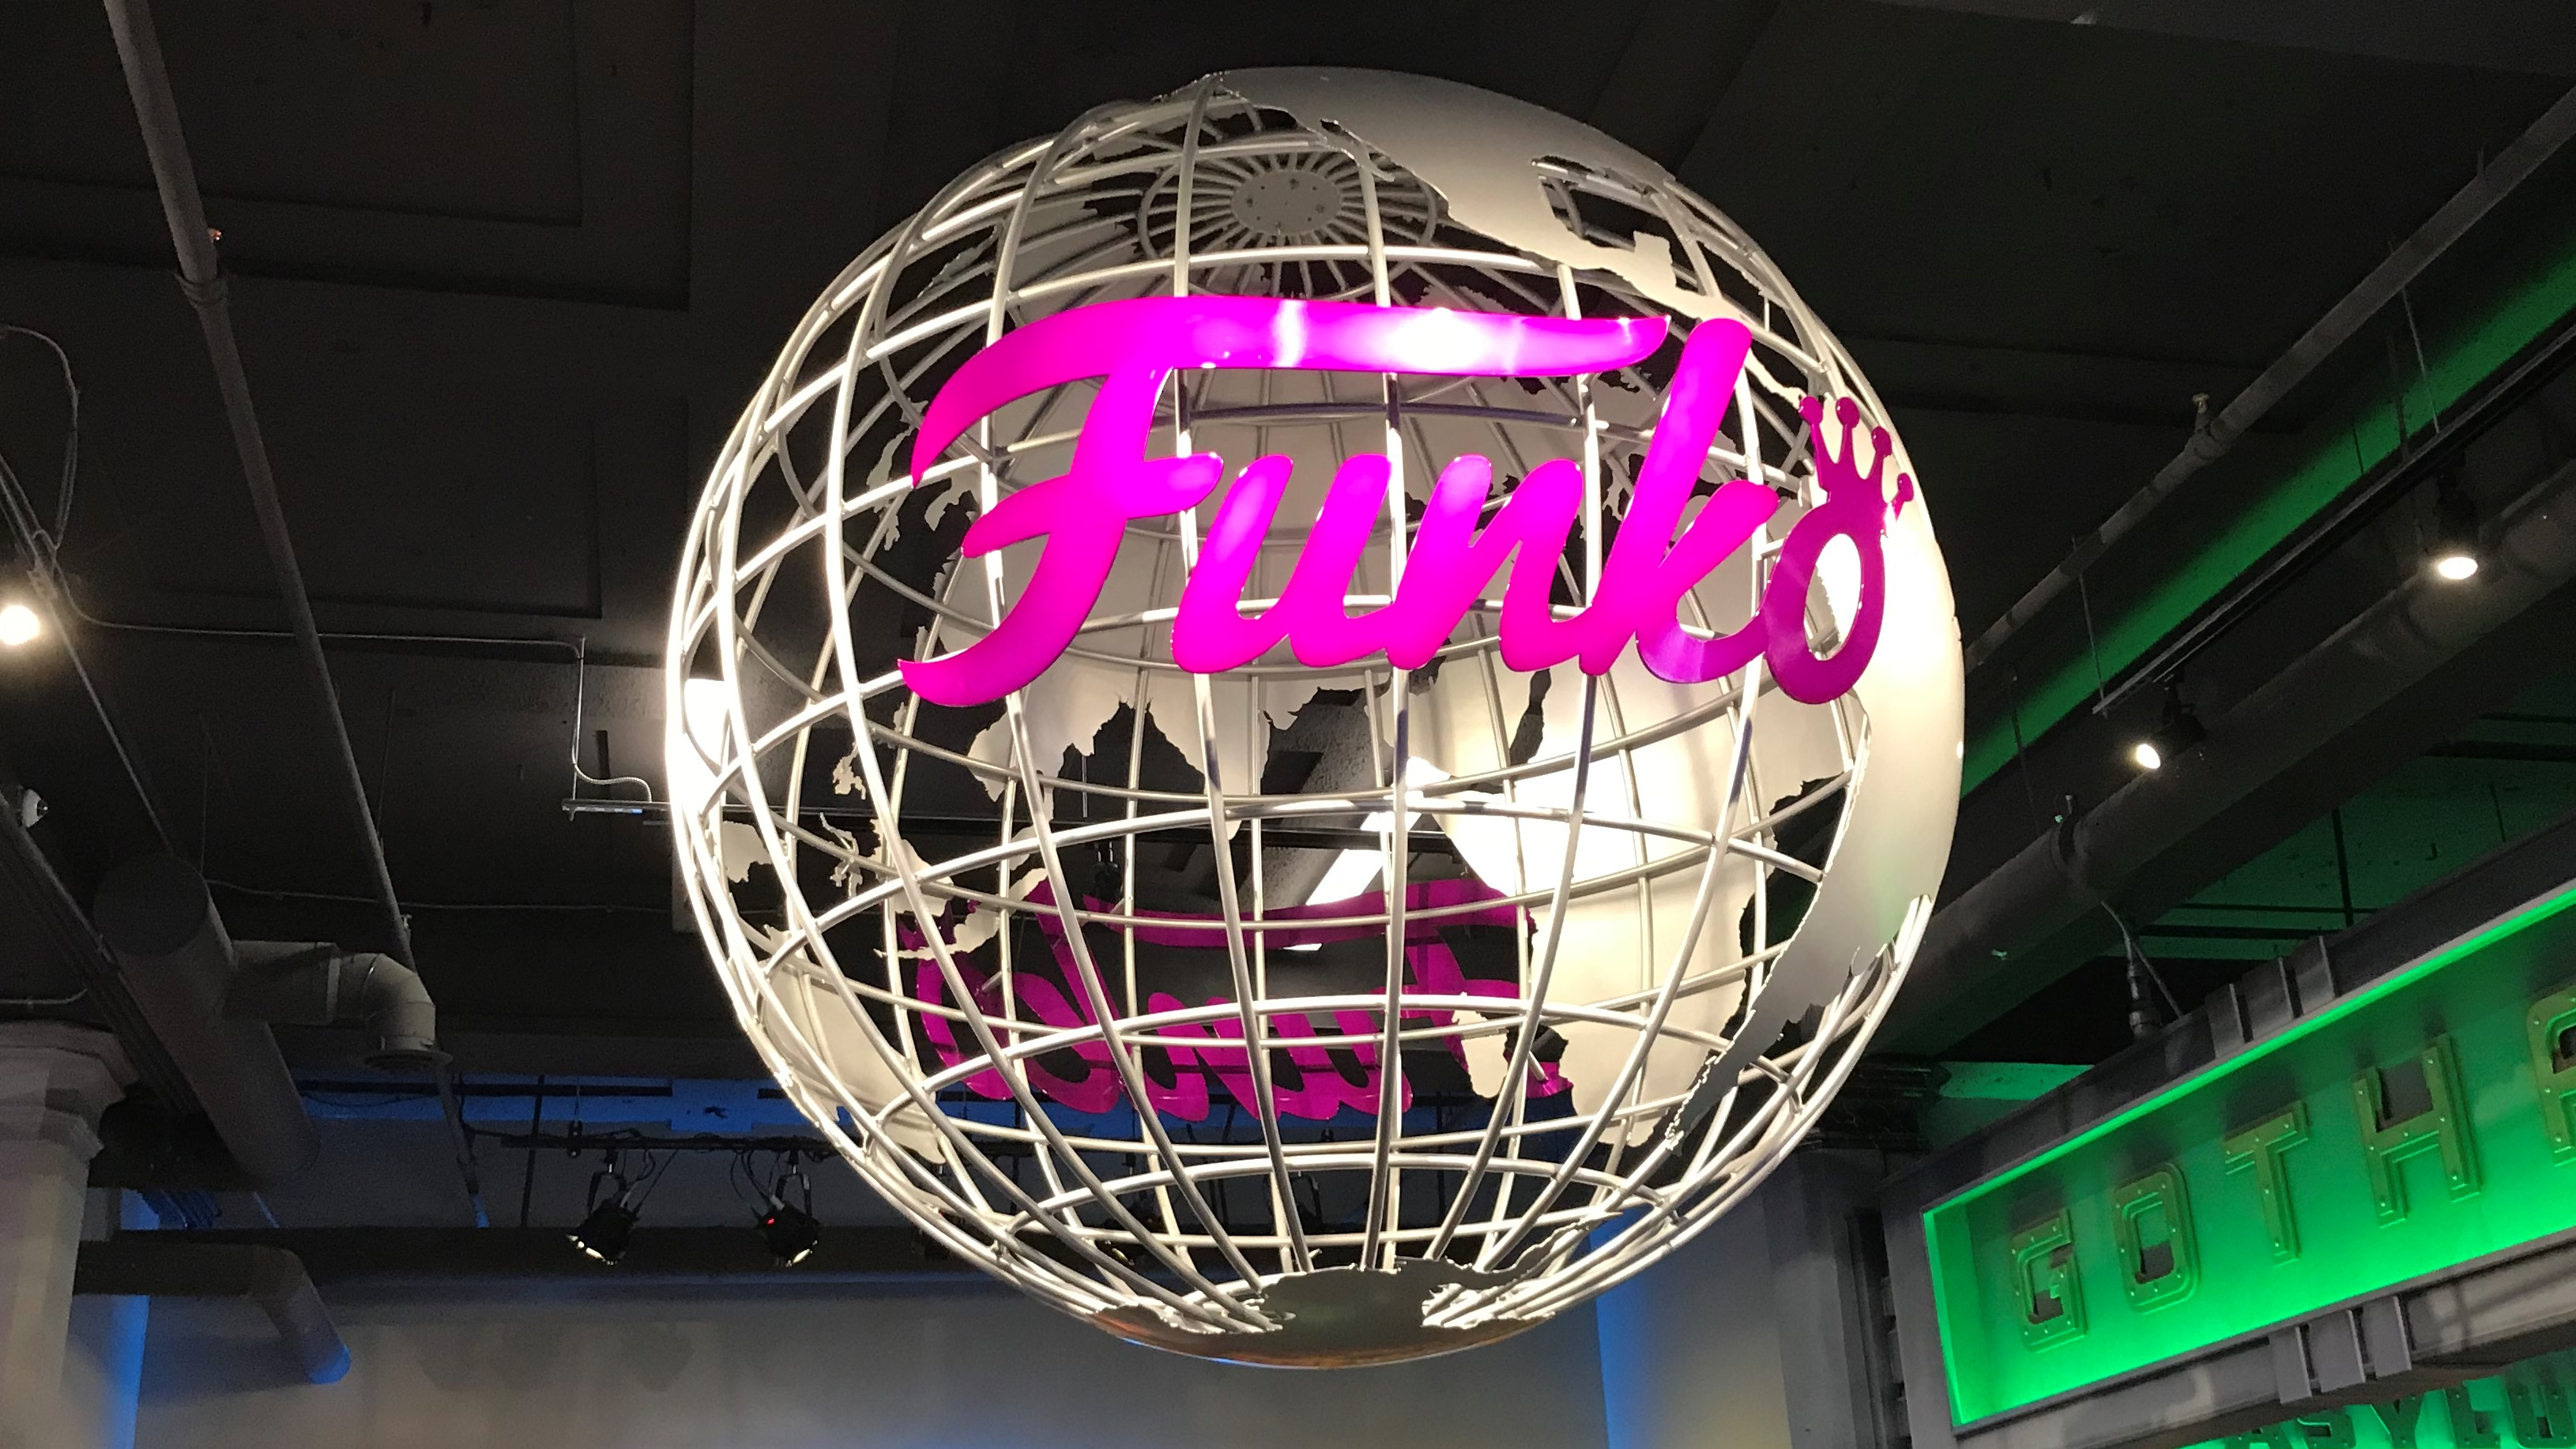 a silver painted steal globe hanging from the acieling adorn with a bright pink Funko store logo